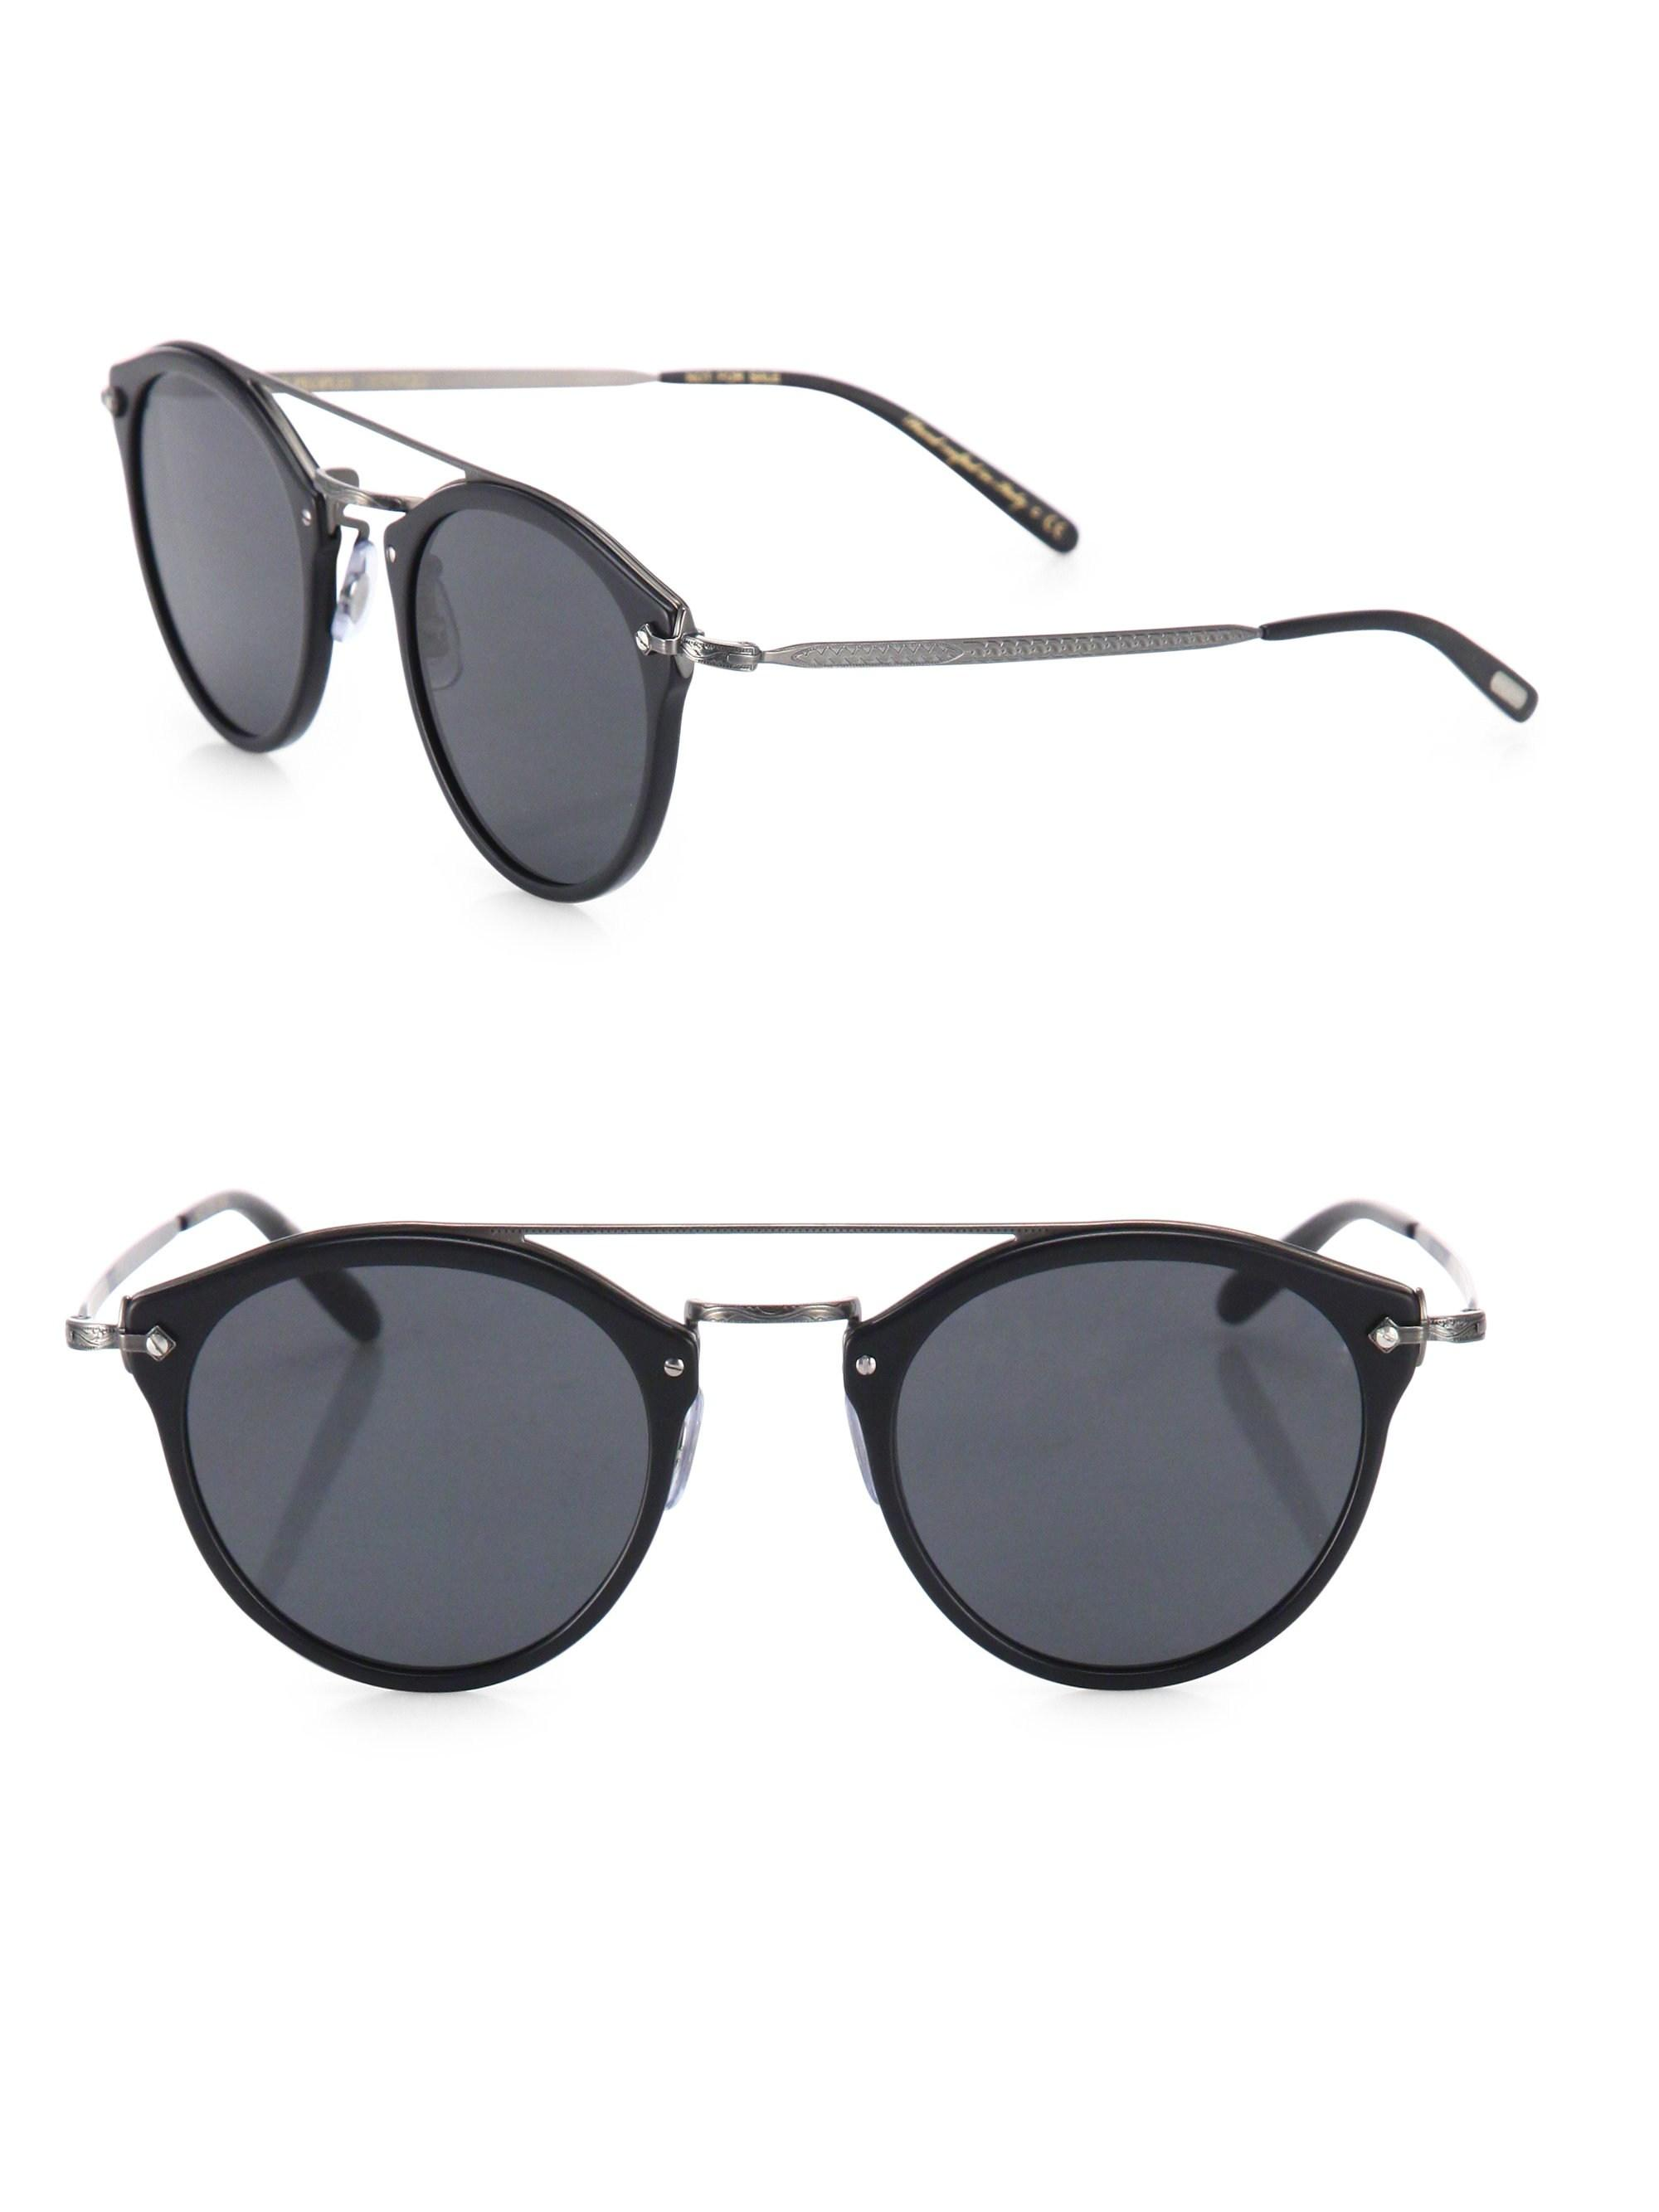 745cf74d08 Oliver Peoples Men s Remick 50mm Round Sunglasses - Black in Black ...